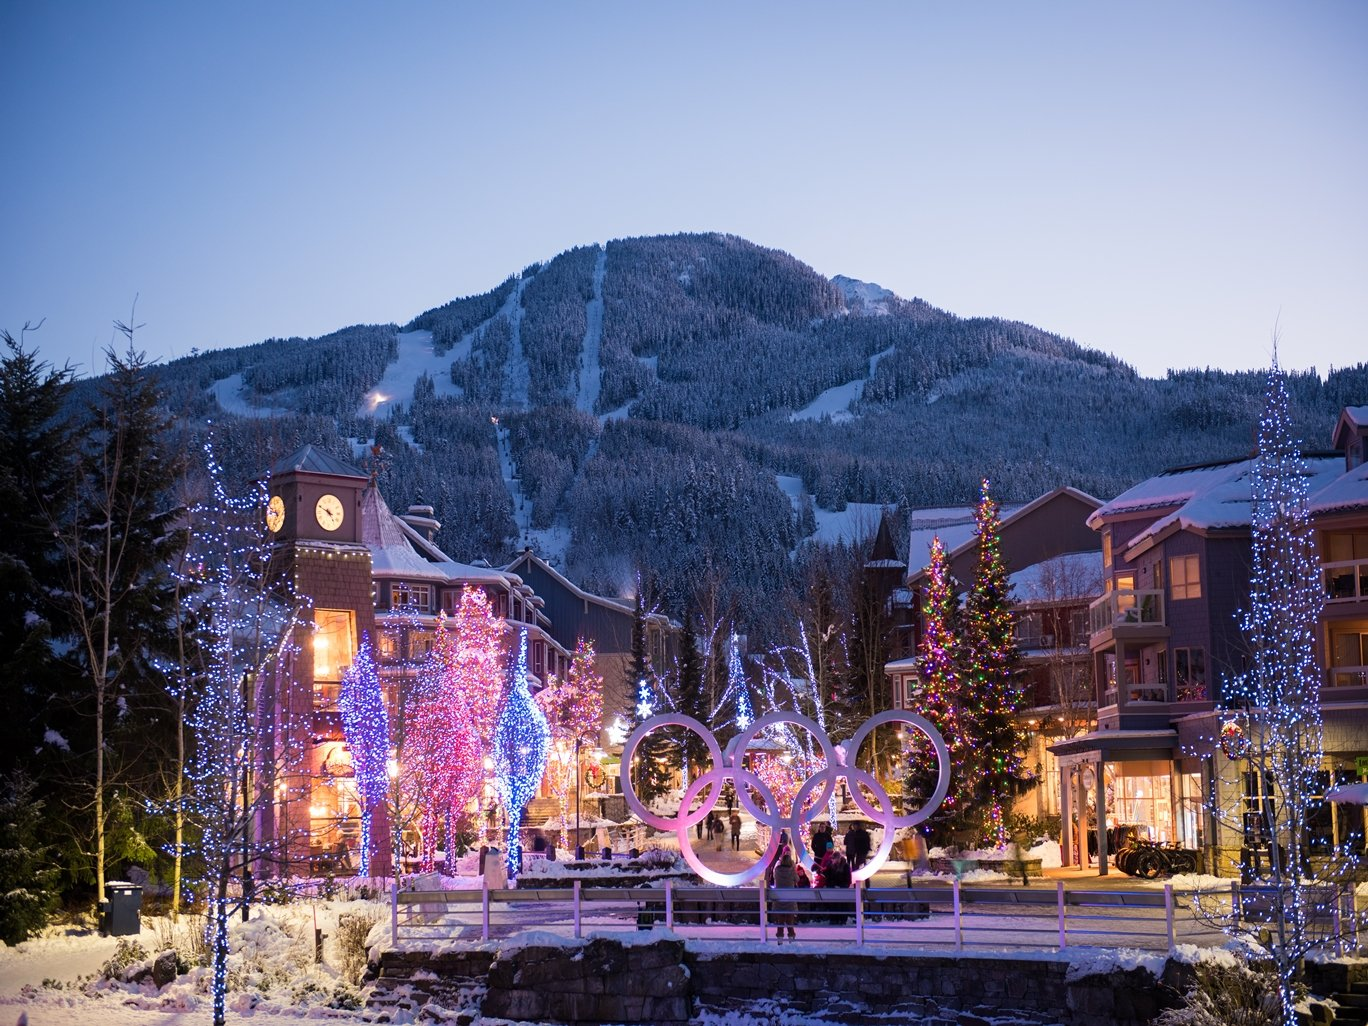 Whistler Village in Winter Photo by Mike Crane